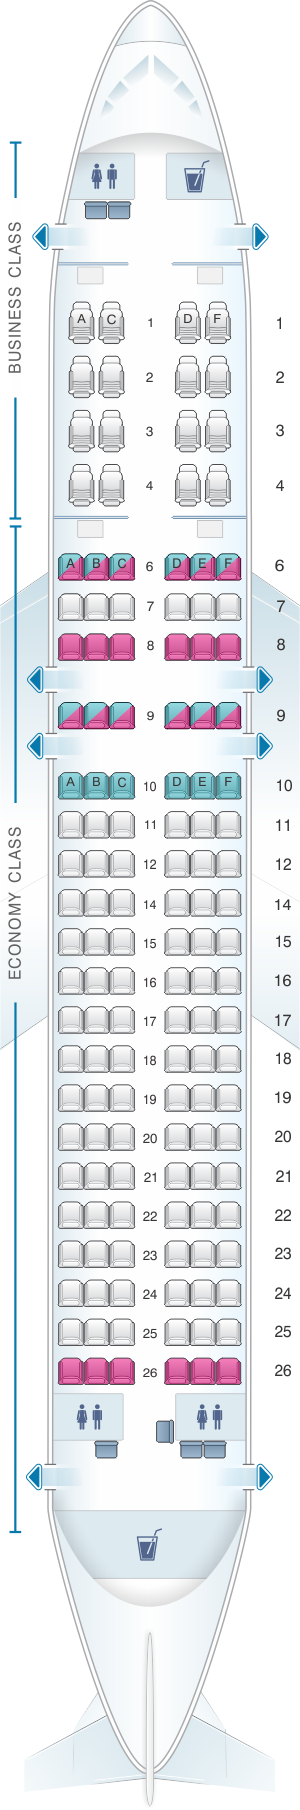 Seat map for SriLankan Airlines Airbus A320 Config. 2